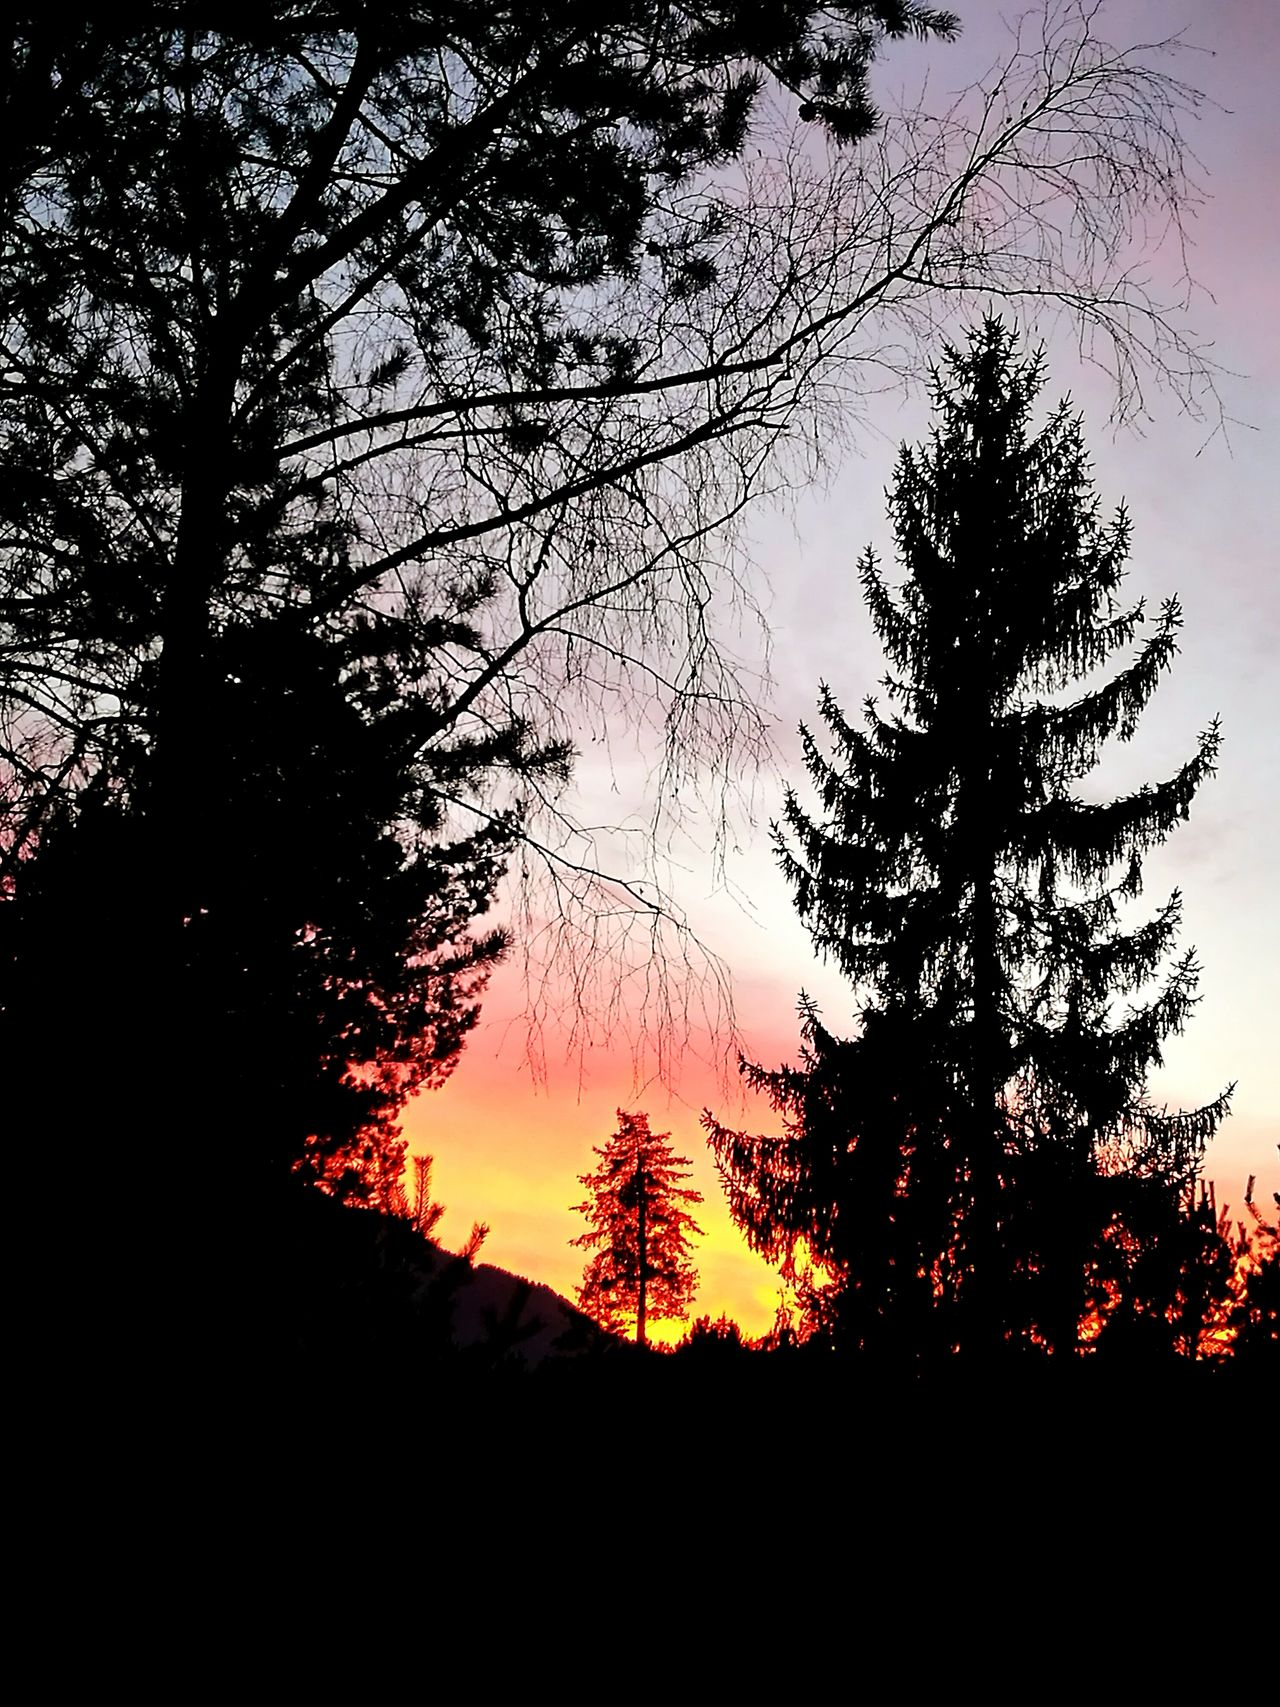 Nature Silhouette Tree Sky Sunset No People Beauty In Nature Outdoors Tranquility Scenics Day Walking Around Villach Orange Color Tranquil Scene Silhouette Tree Sunset Silhouettes Evening Glow Sky And Trees Welcome To Black